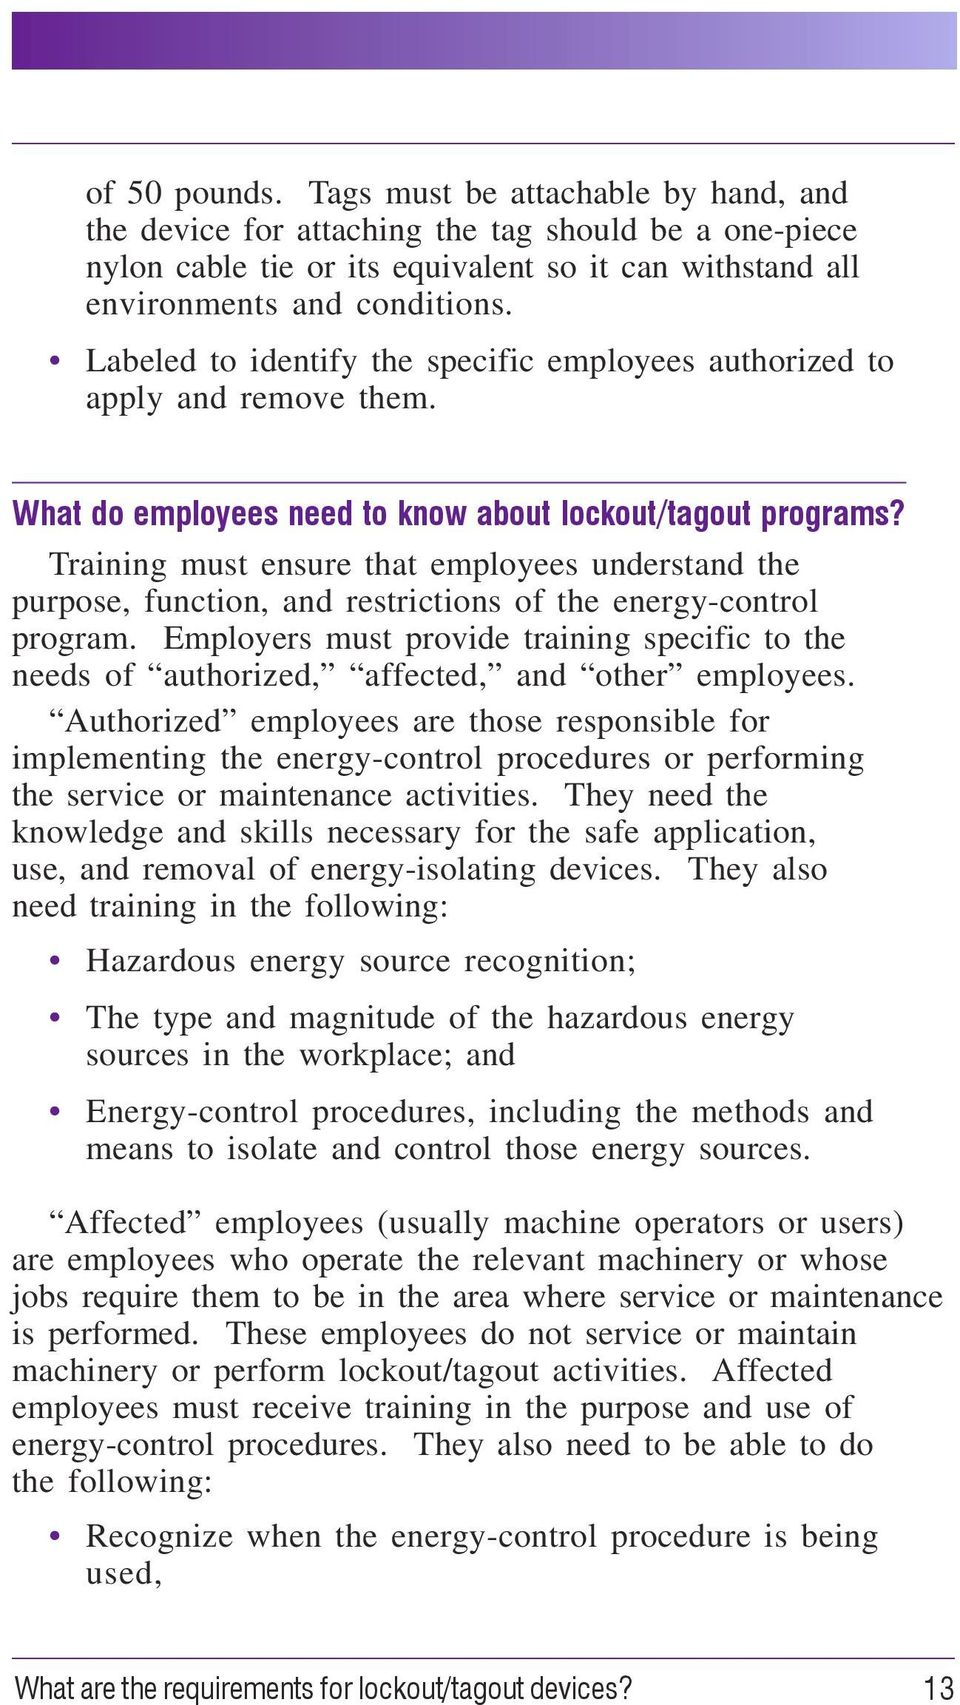 Training must ensure that employees understand the purpose, function, and restrictions of the energy-control program.